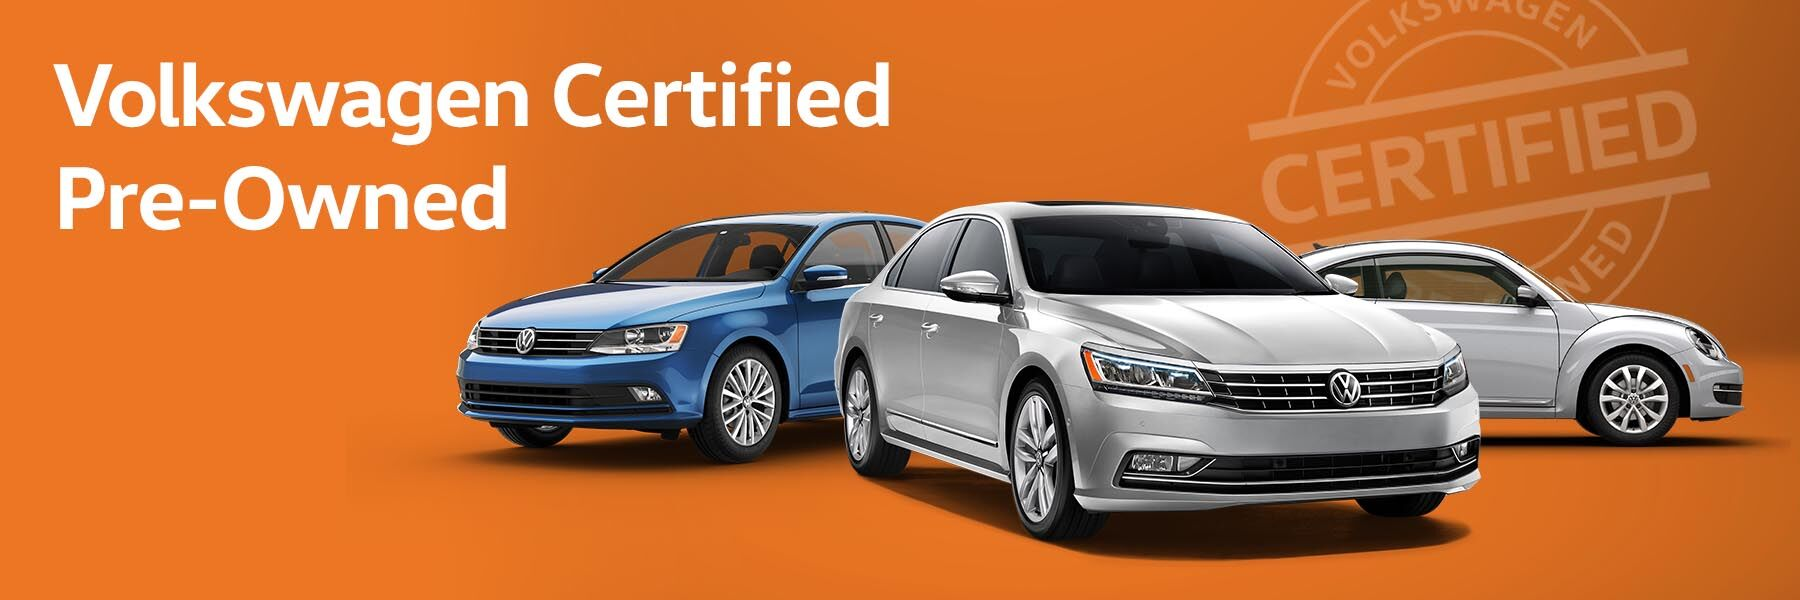 Volkswagen Certified Pre-Owned in White Plains, NY